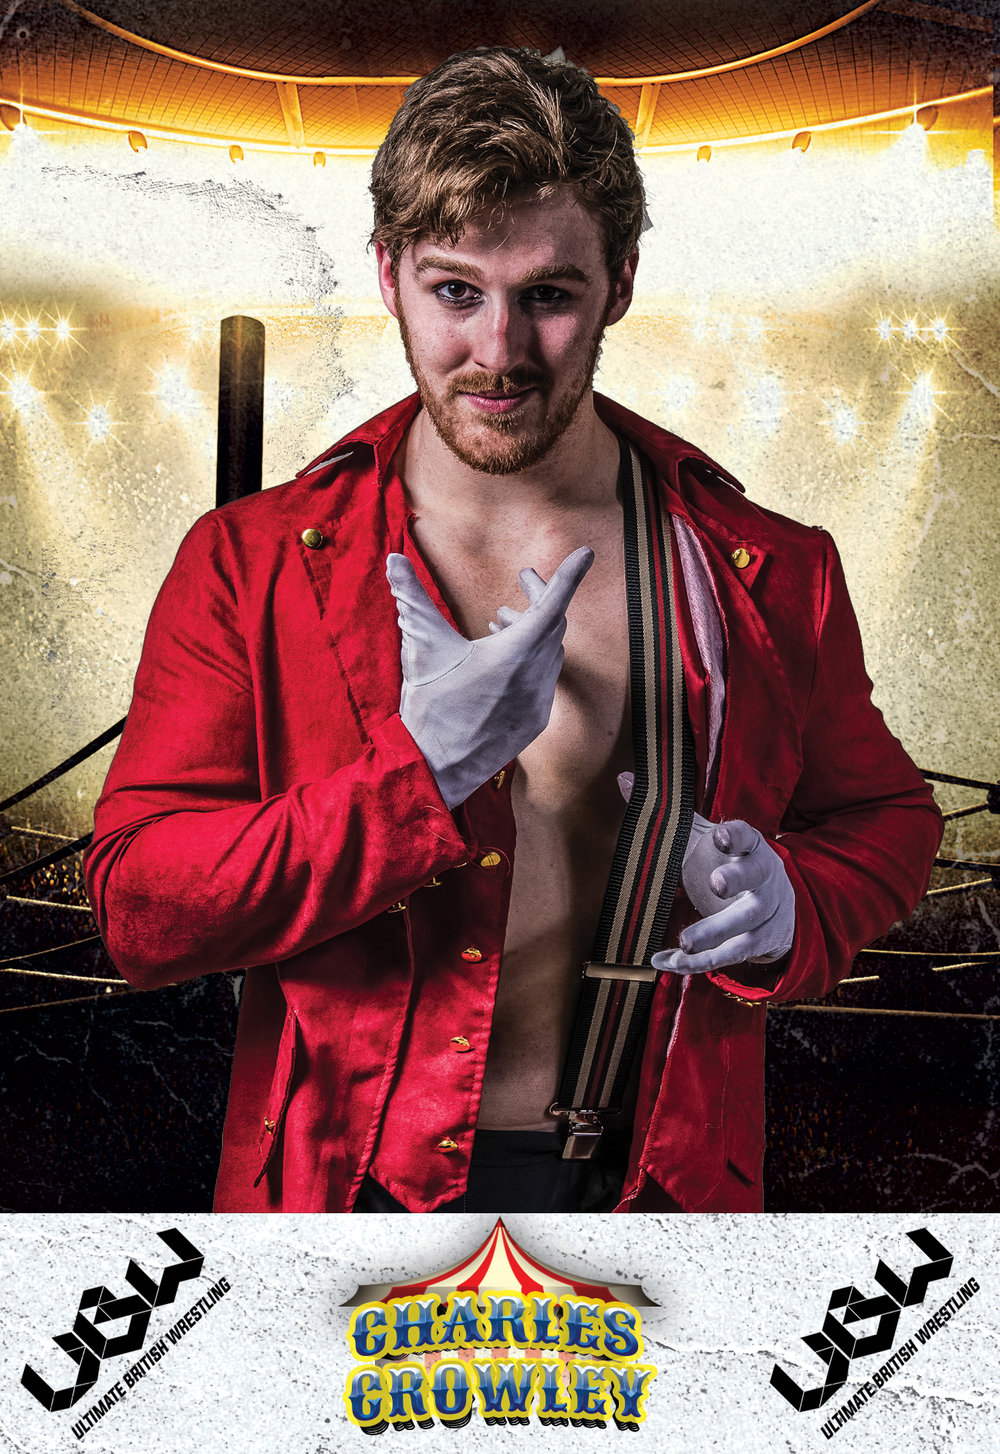 Charles Crowley:  'Ladies and Gentlemen; Welcome to the show!' The opening gambit of The Ringmaster and Carnival King, Charles Crowley. Whilst relatively new to the UBW roster, Crowley has earned the love of the fans with his natural good looks and channelling a charisma that can only be learnt from years of entertaining in the spotlight. The real Greatest Showman can be found in the wrestling circus of UBW.